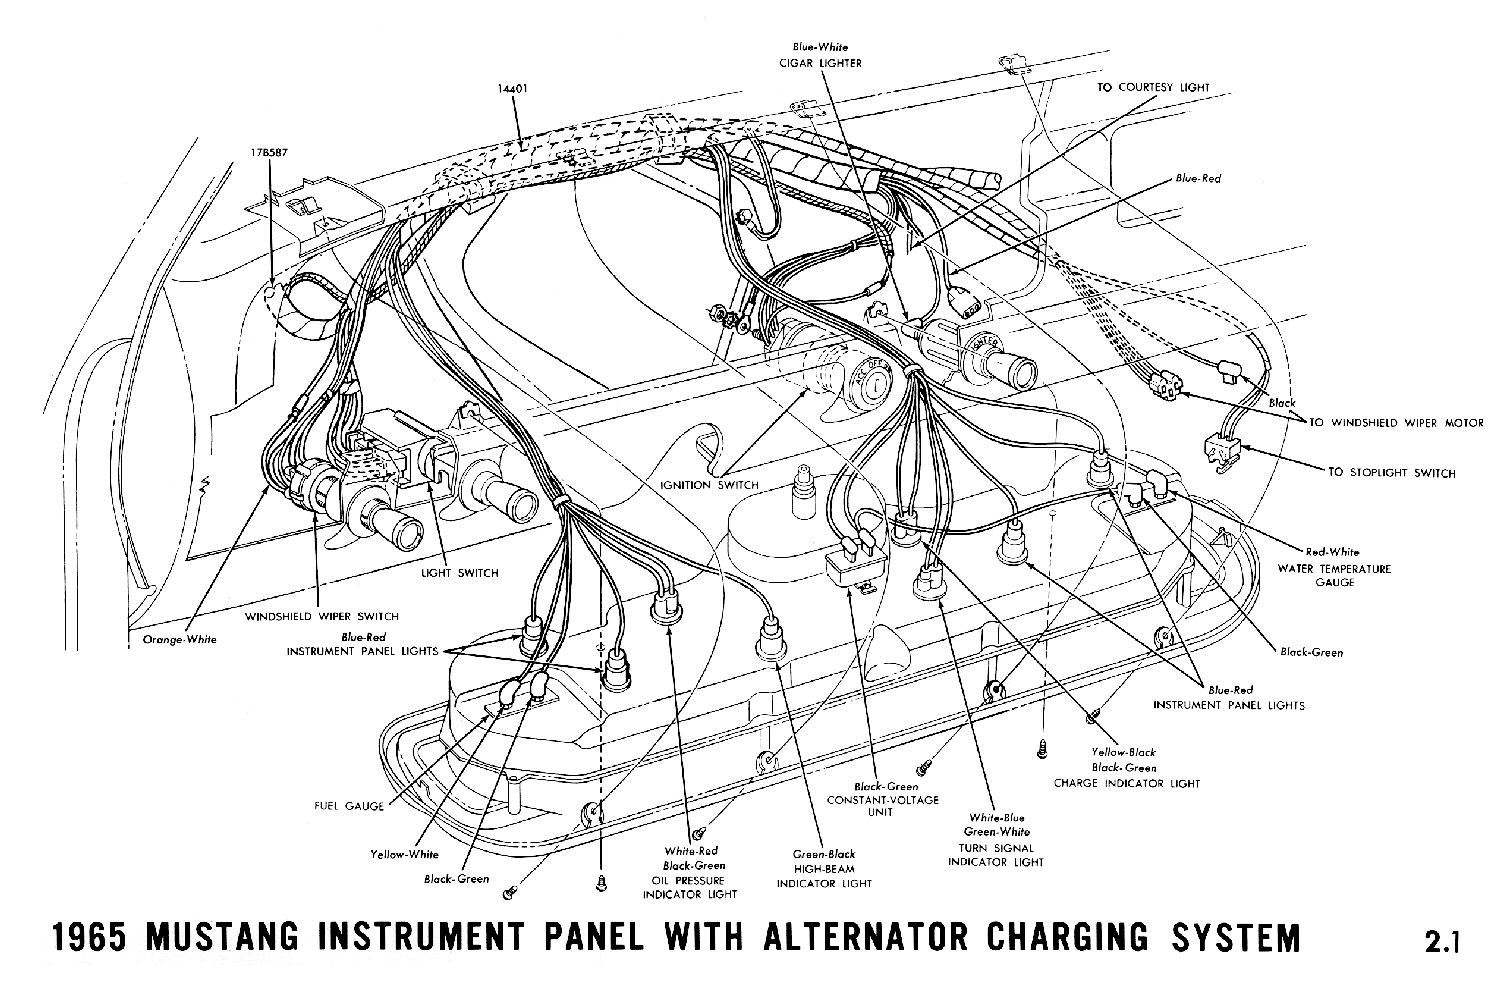 1965 Mustang Complete Wiring Diagram Books Of Hanging Furnace Janitrol Diagrams Average Joe Restoration Rh Averagejoerestoration Com